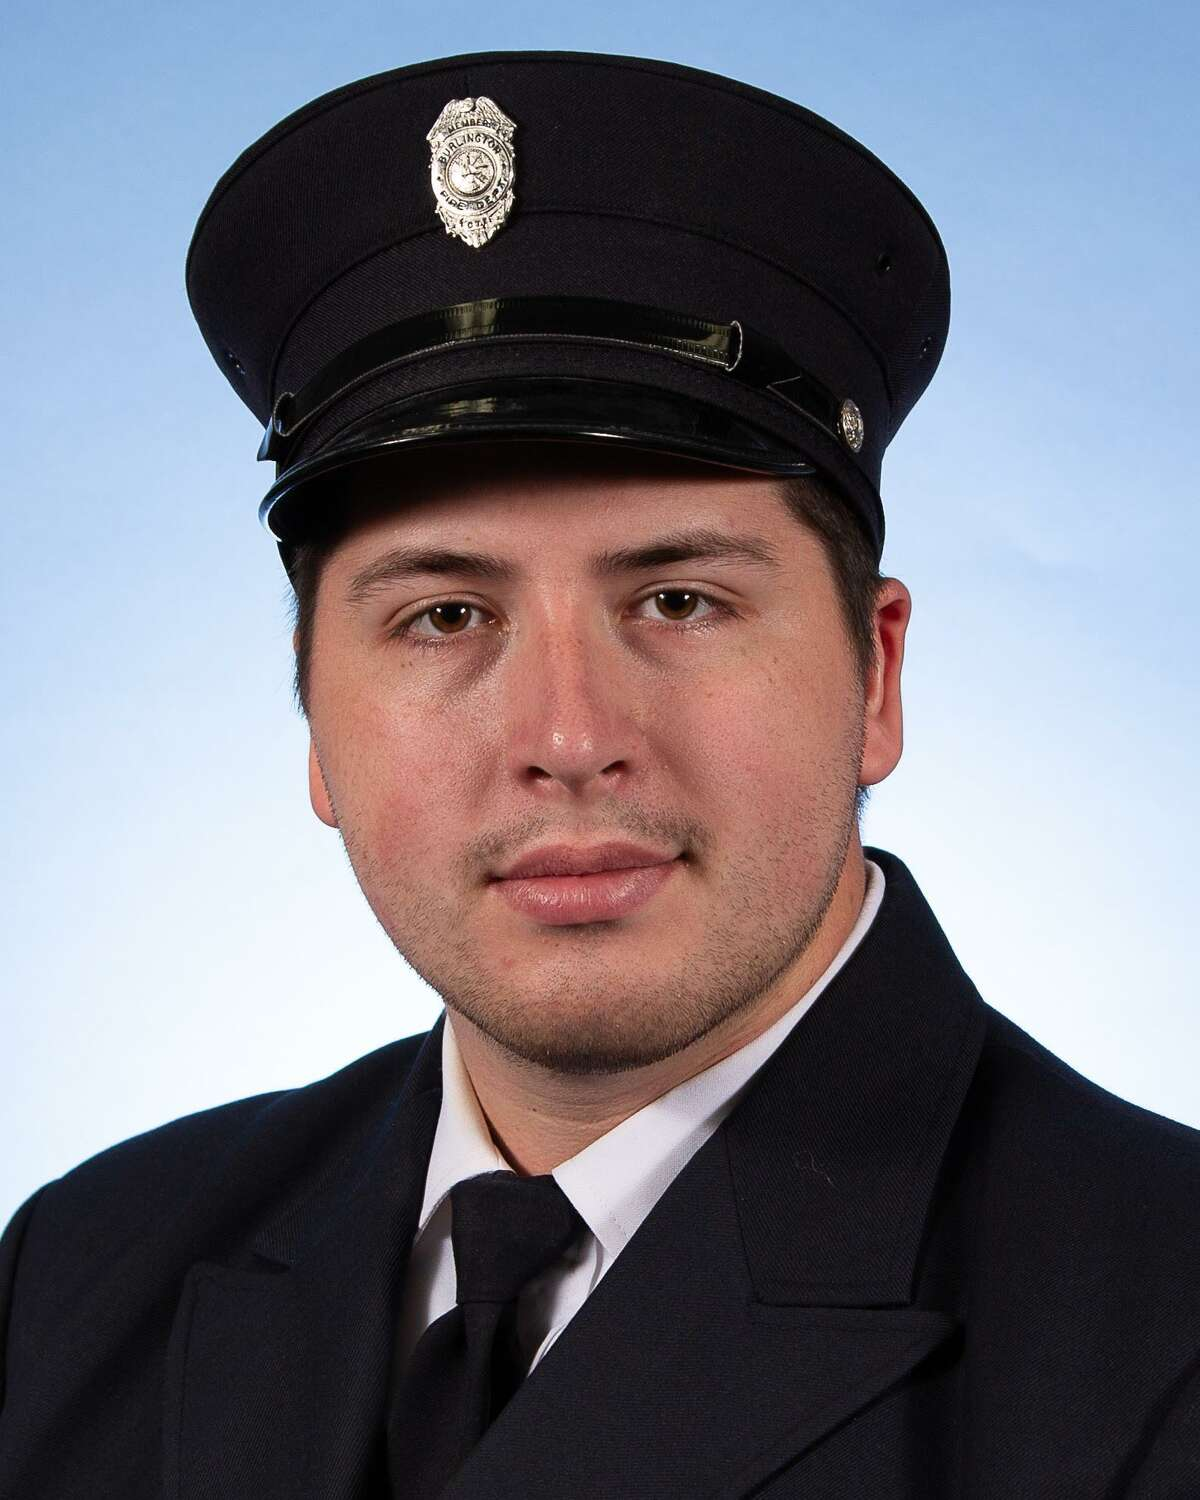 Burlington firefighter and EMT Colin McFadden, 26, suffered a medical emergency while fighting the New Hartford House fire Aug. 10. He died Thursday, officials said.